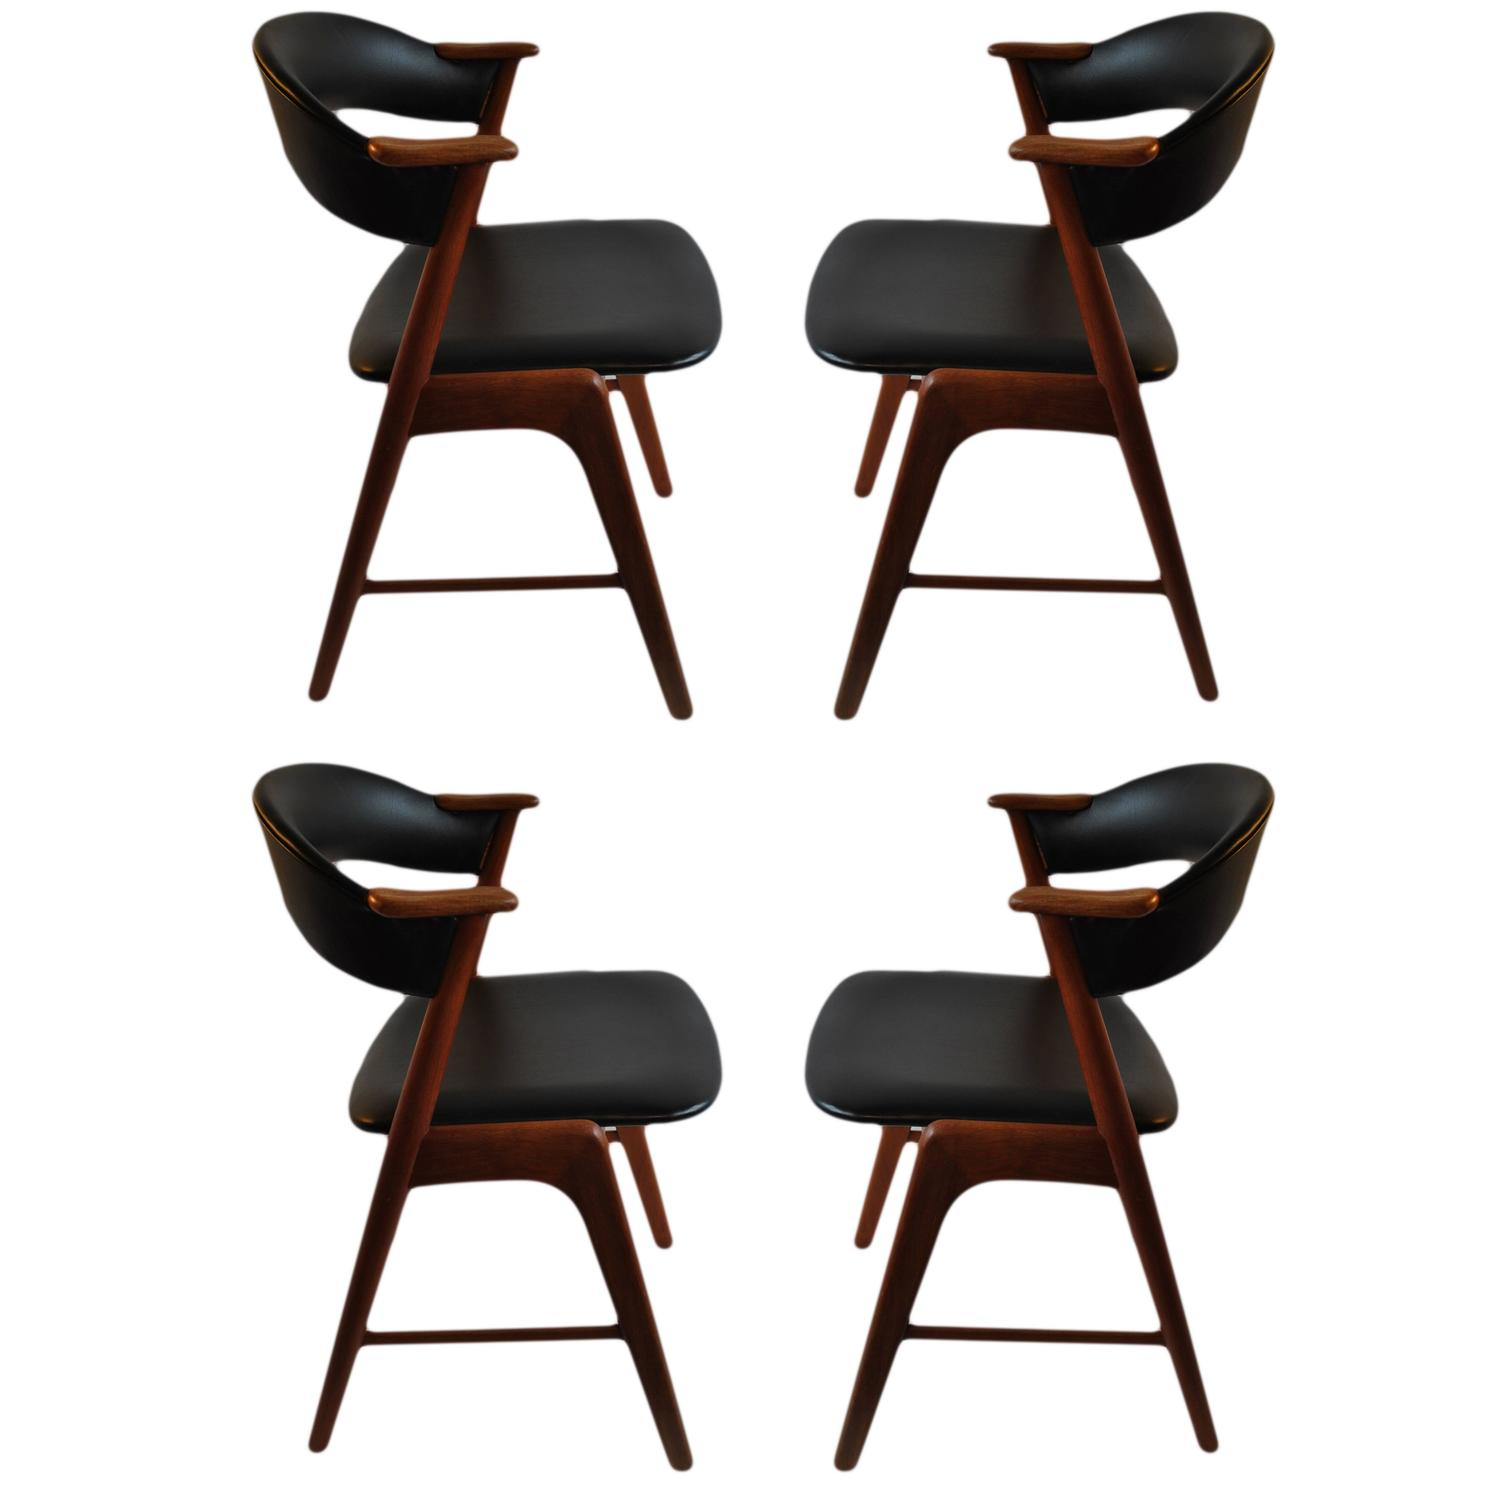 Kai kristiansen dining chairs set of four at 1stdibs - Kai kristiansen chairs ...